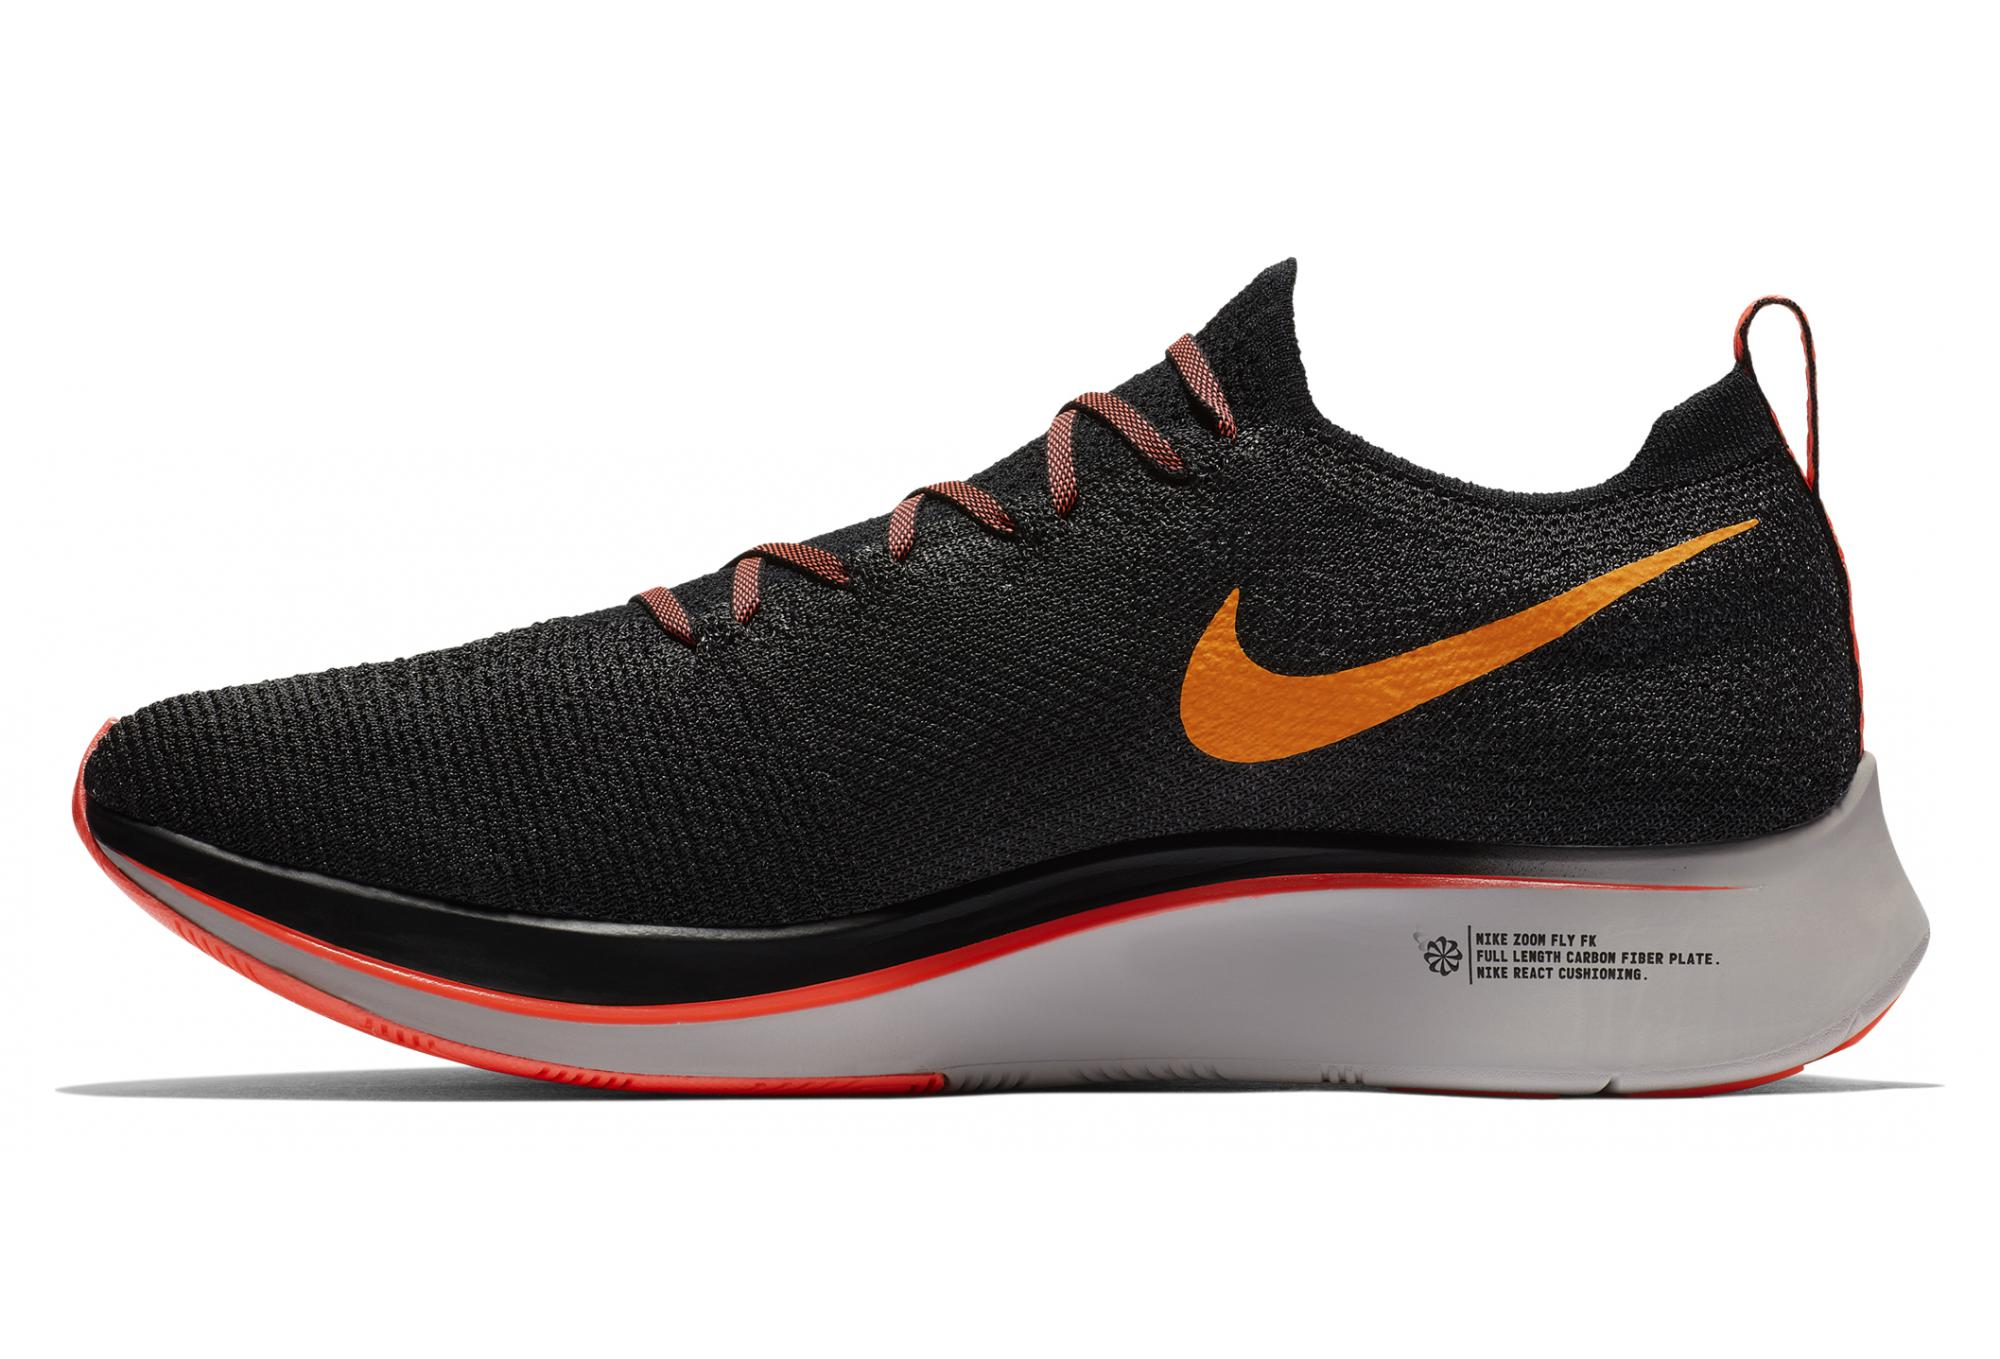 Flyknit Orange Zoom De Nike Noir Fly Chaussures Running Rctqhxsd 4LAq53Rj